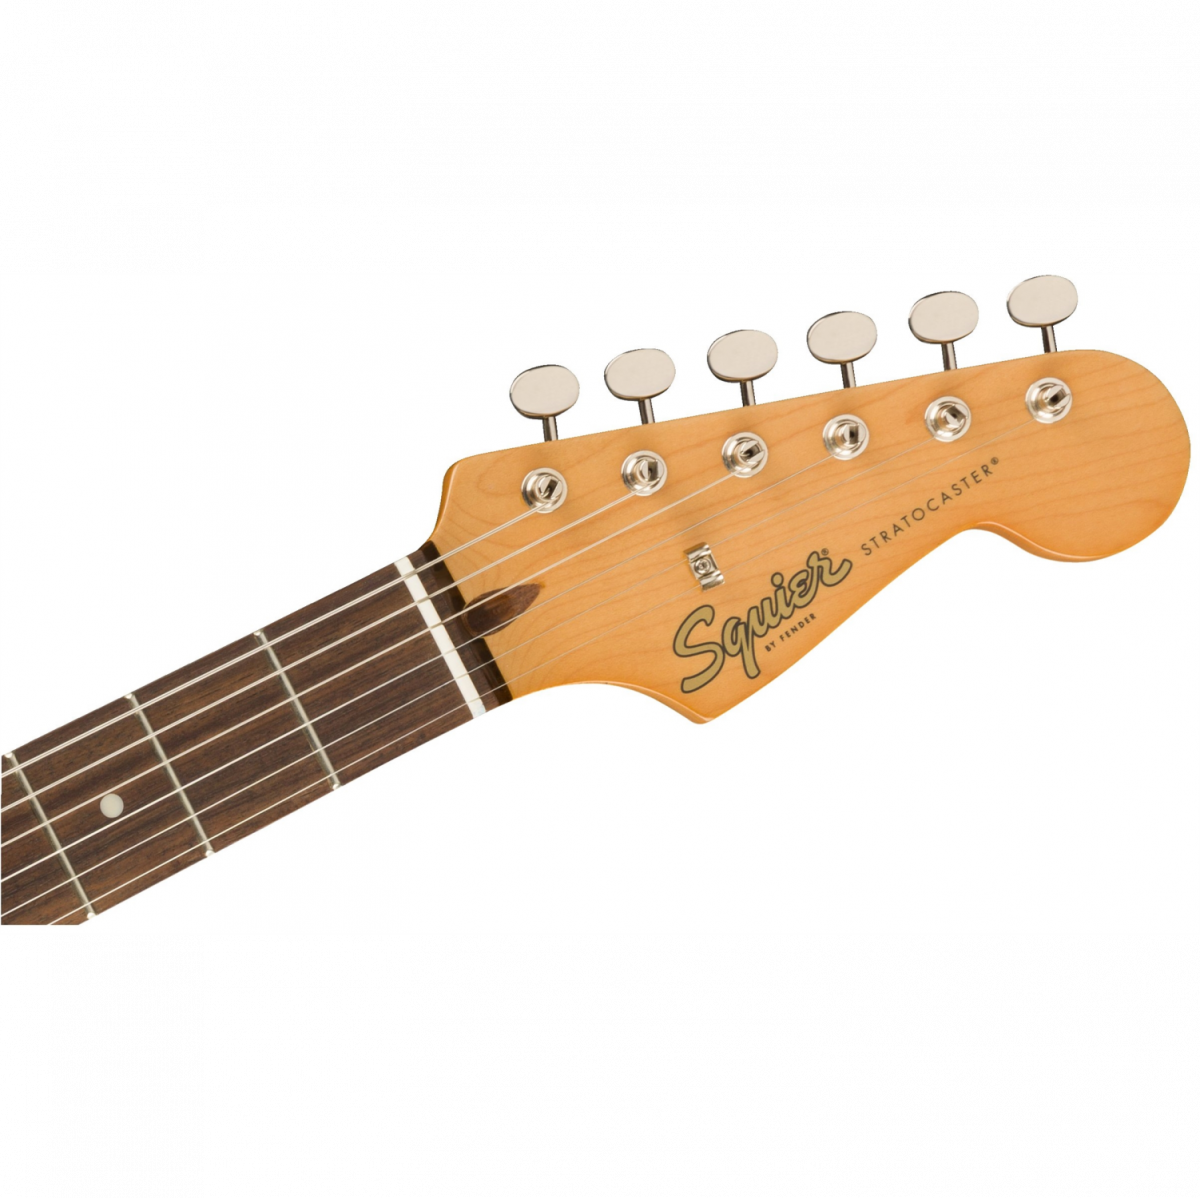 Squier - Classic Vibe '60s Stratocaster - Laurel Fingerboard – Candy Apple Red - 0374010509-head